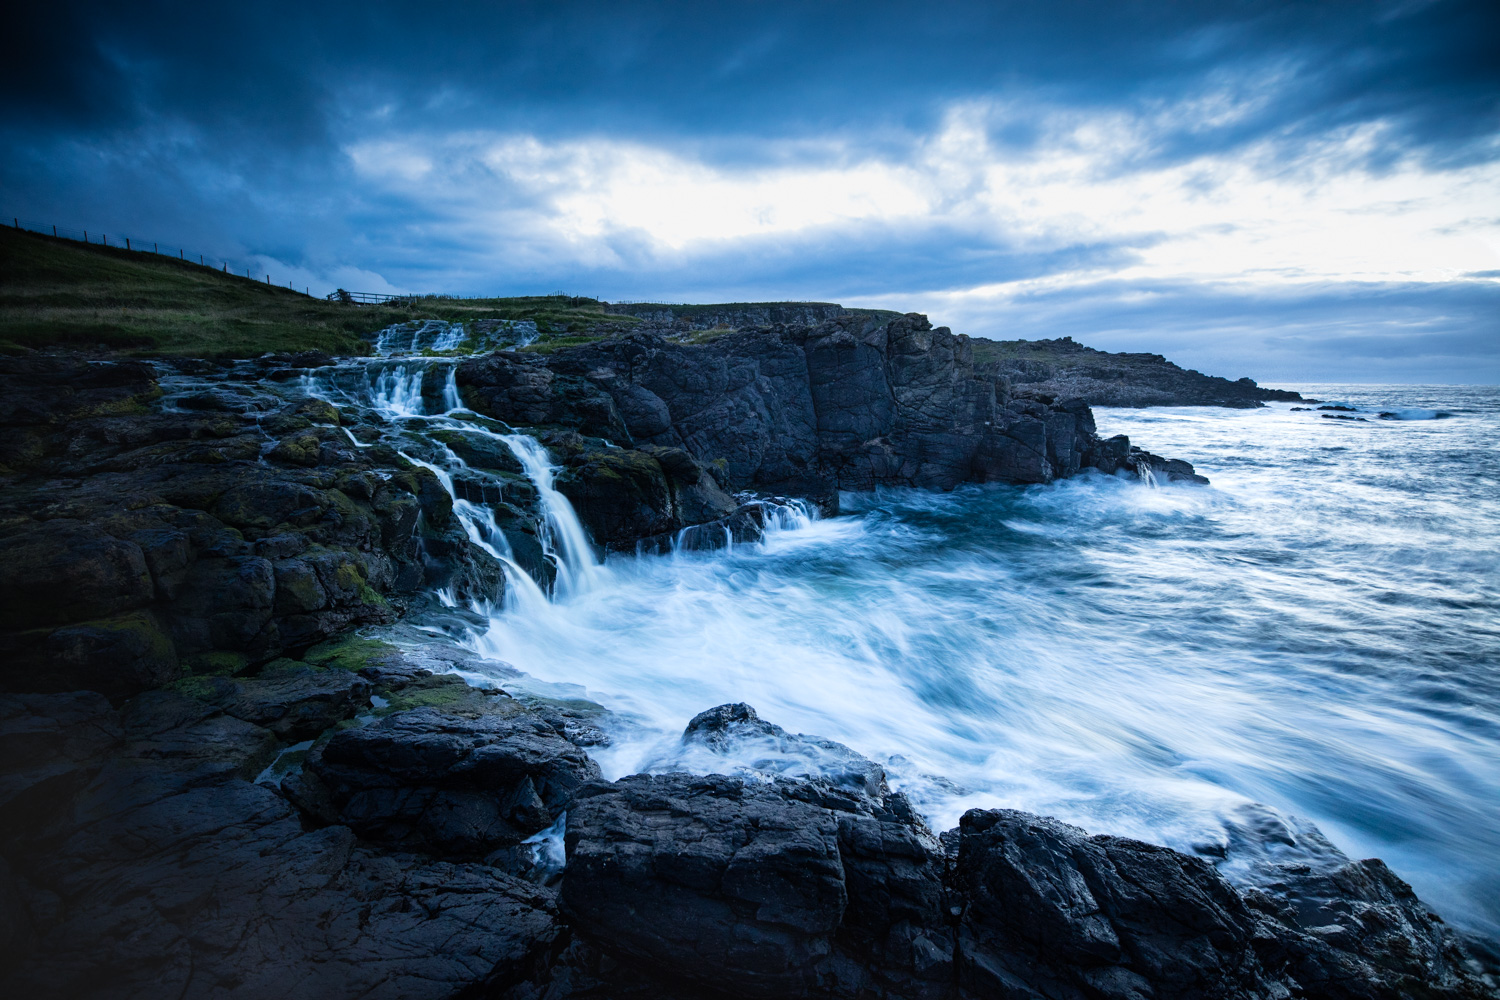 3 - 6 Ways to Capture Coastal Scenes to add Impact to Your Photos